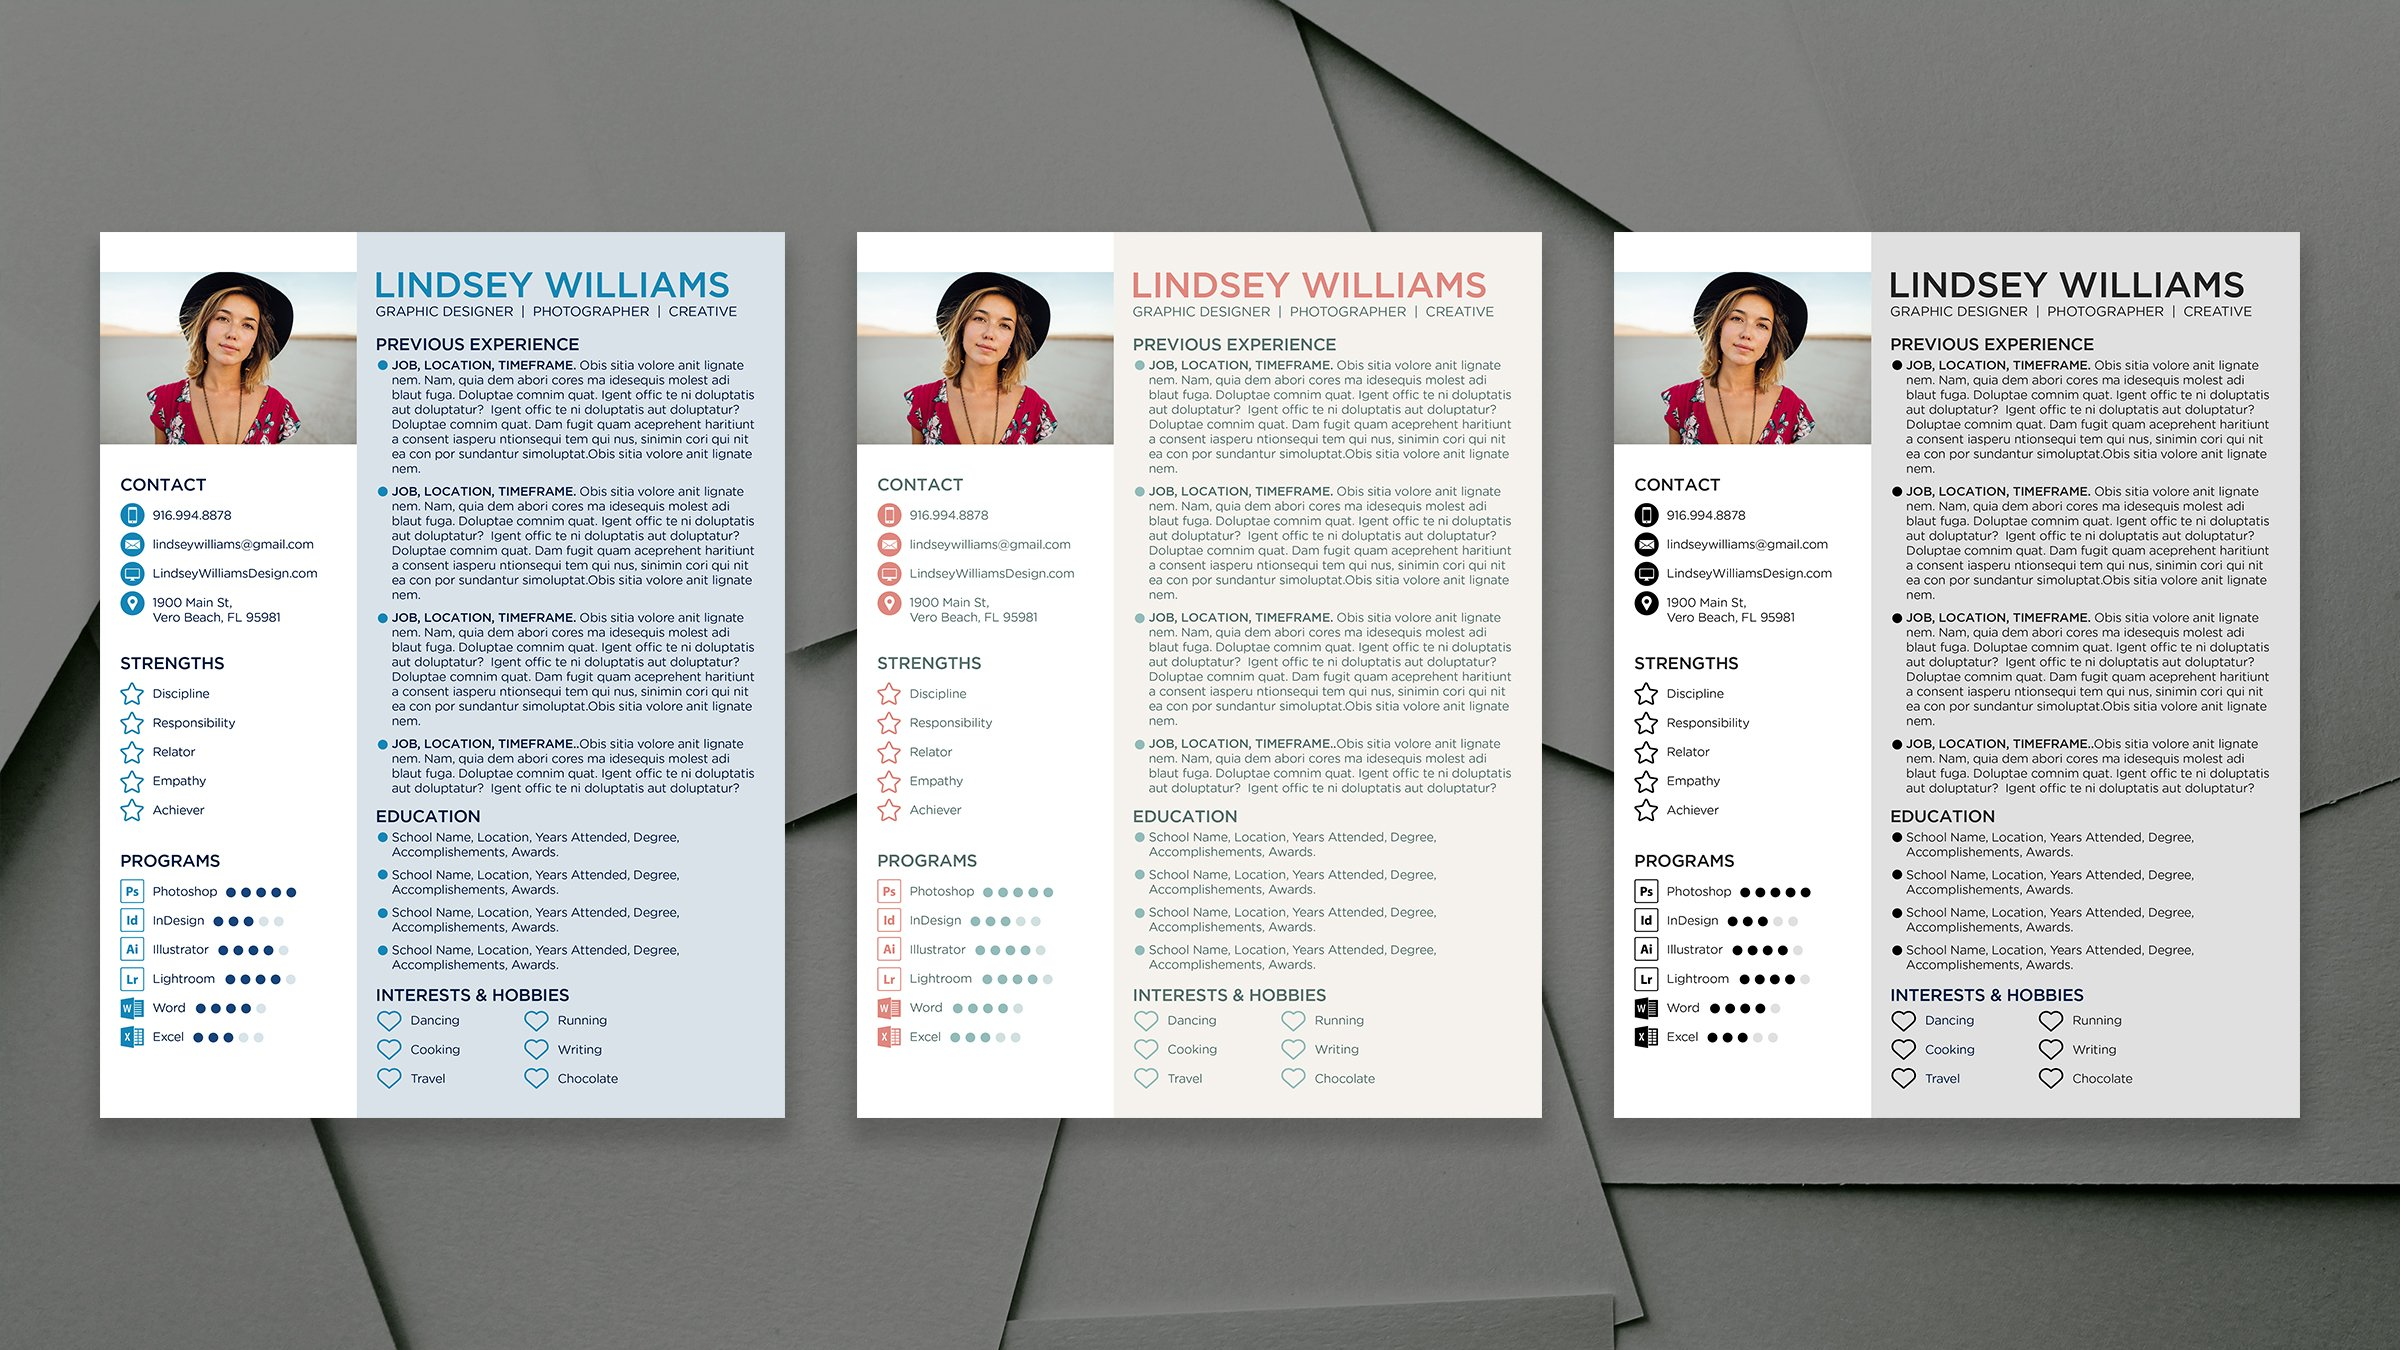 resume and job search services